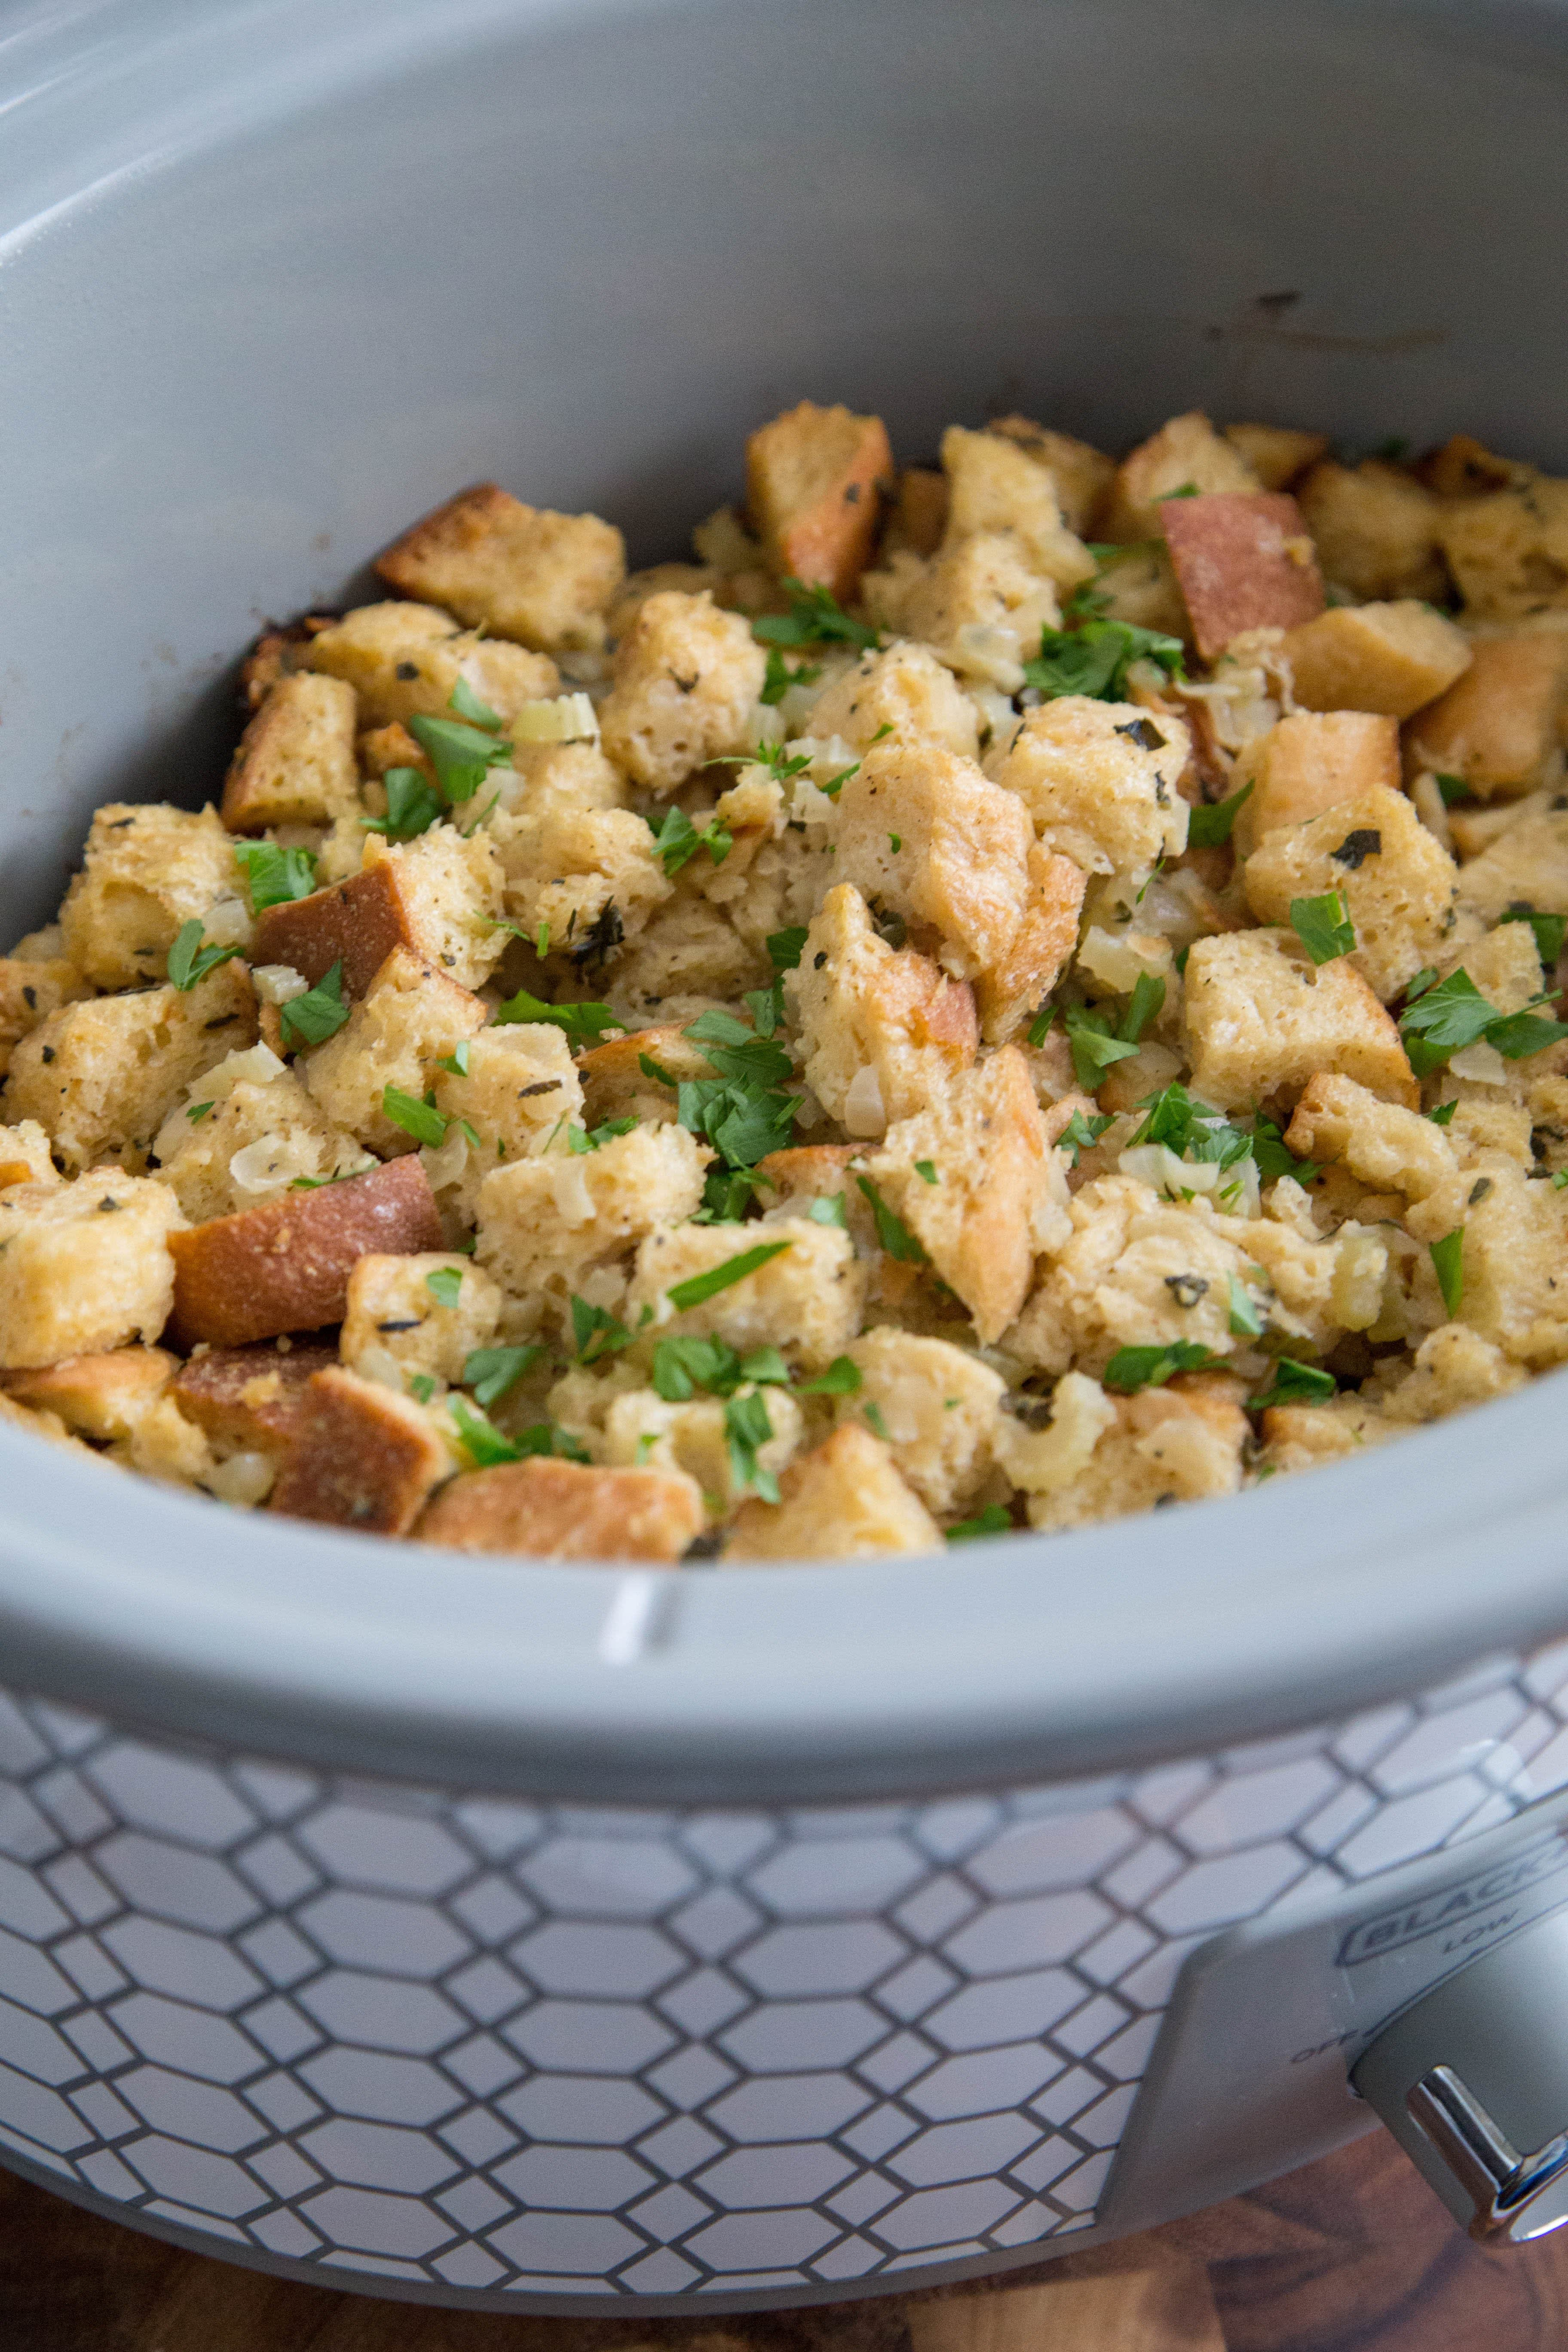 How To Make Stuffing in a Slow Cooker